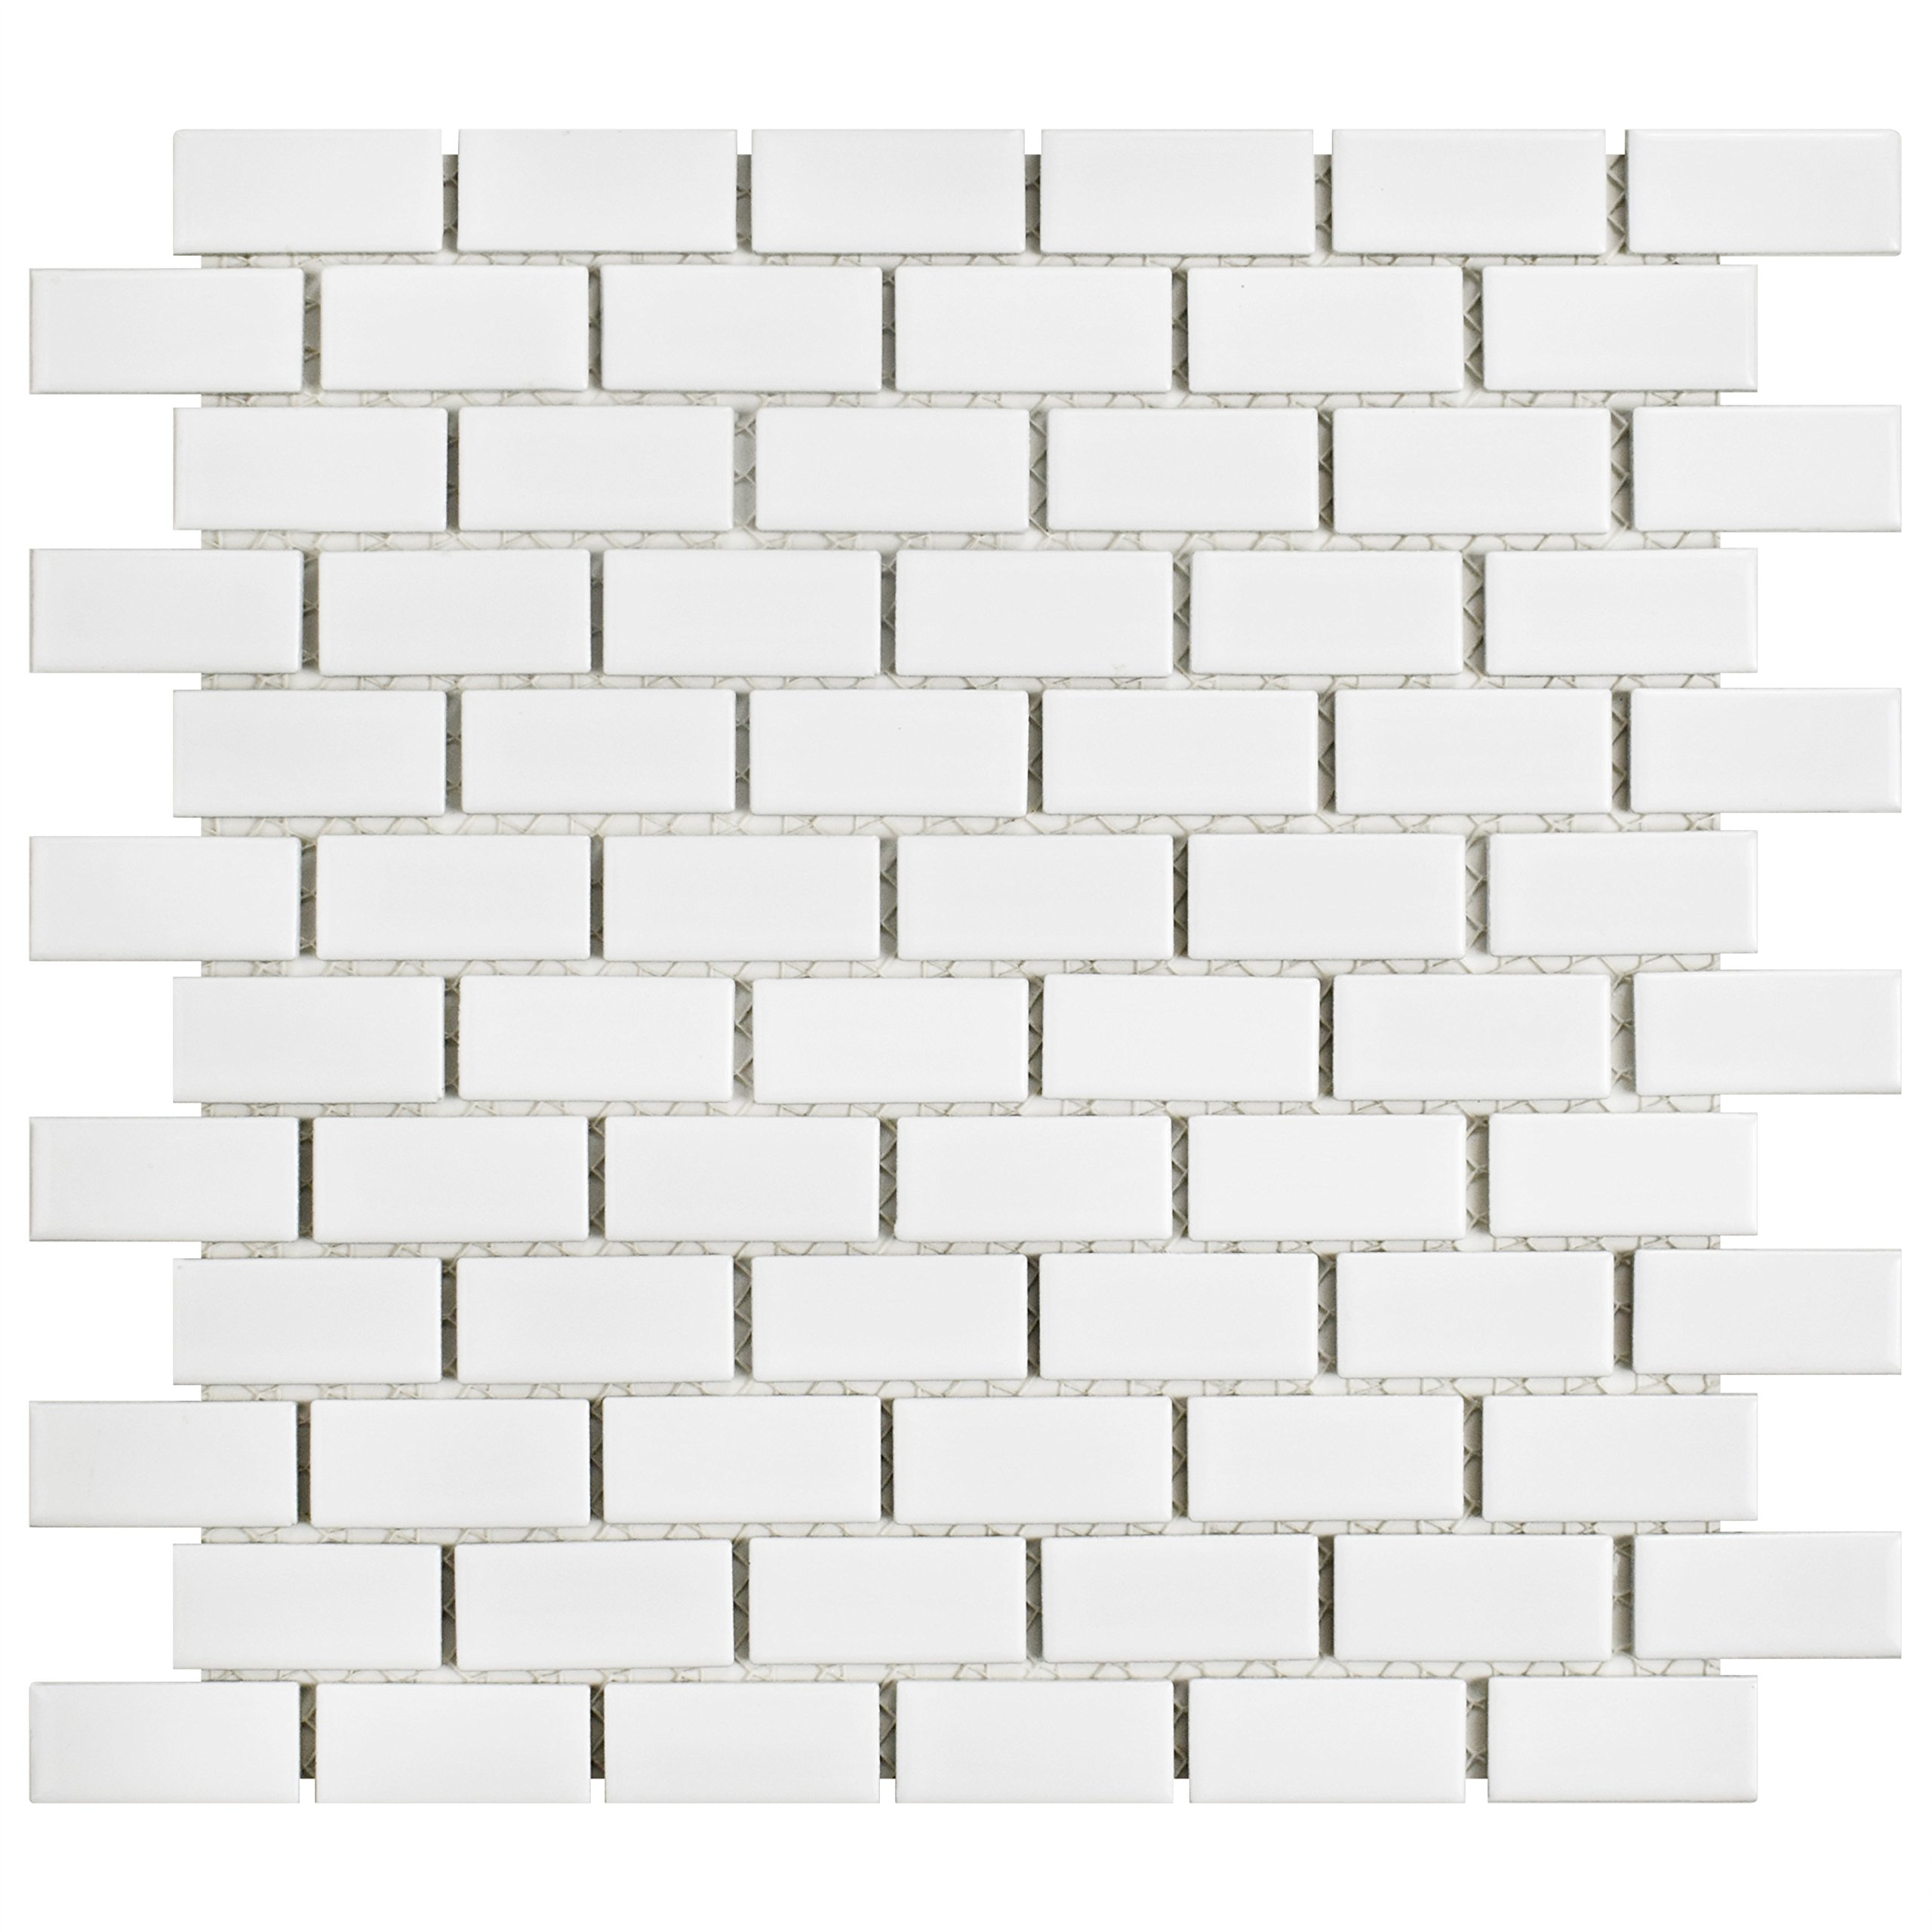 SomerTile FKOVBS11 Marion Subway Porcelain Mosaic Floor and Wall Tile, 11.875'' x 12'', Glossy White